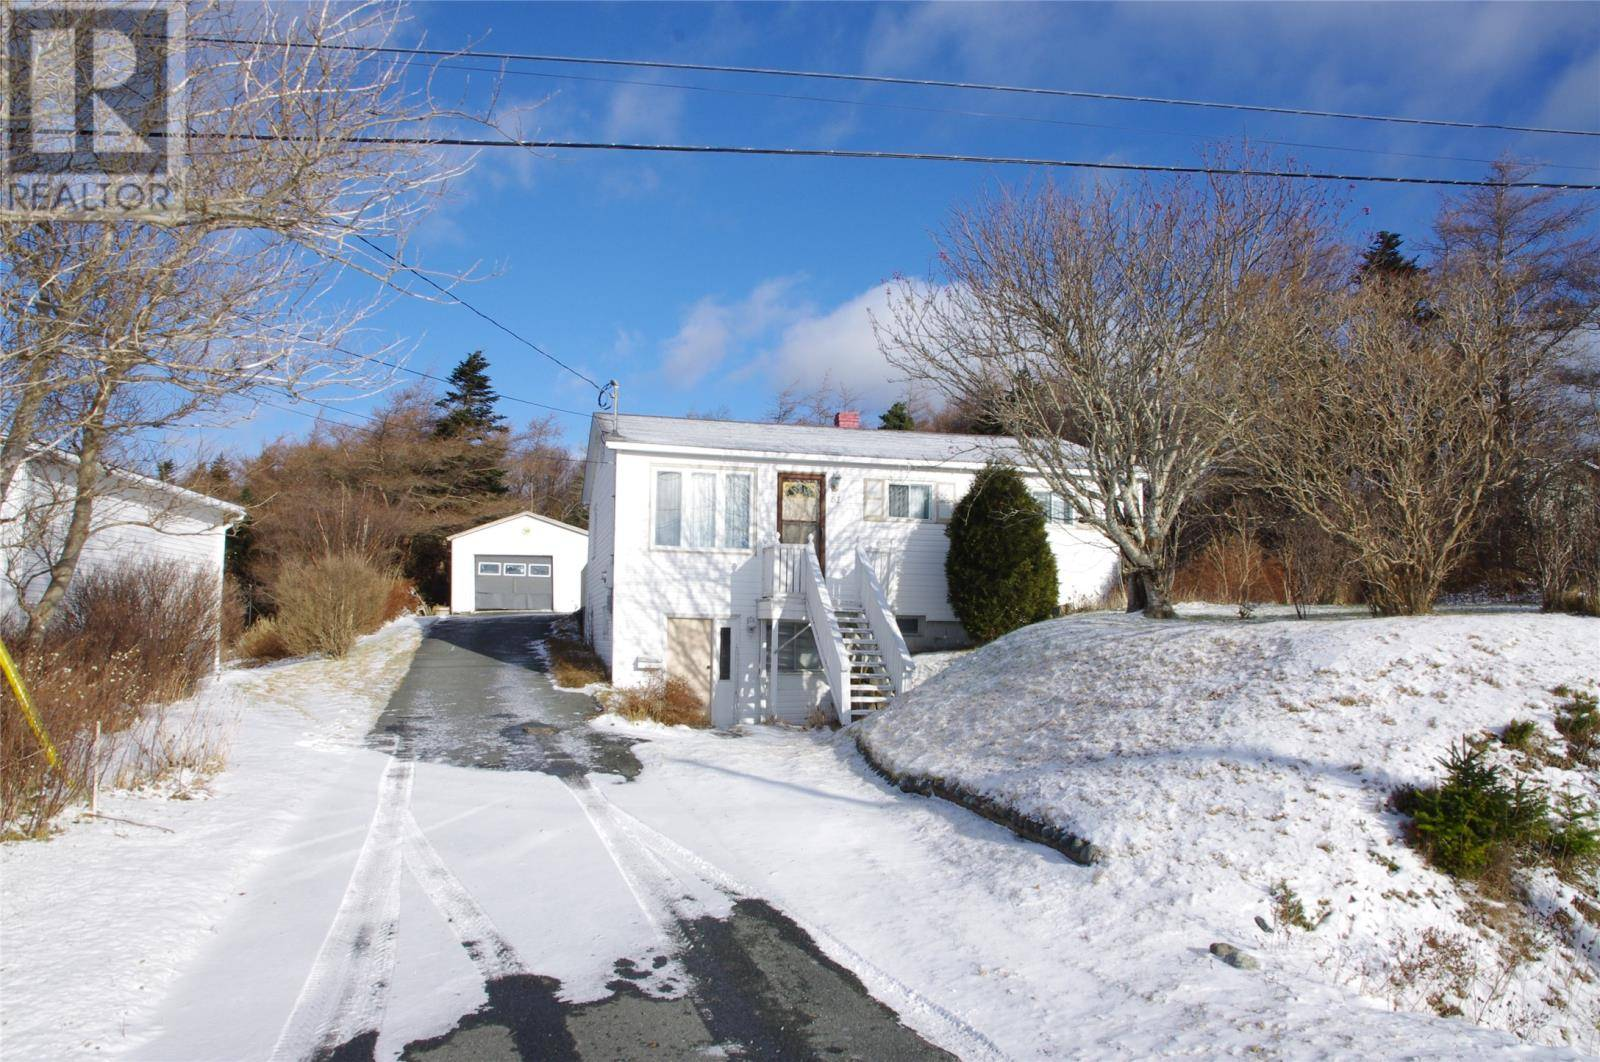 House for sale at 61 Valleyview Rd St. John's Newfoundland - MLS: 1209030